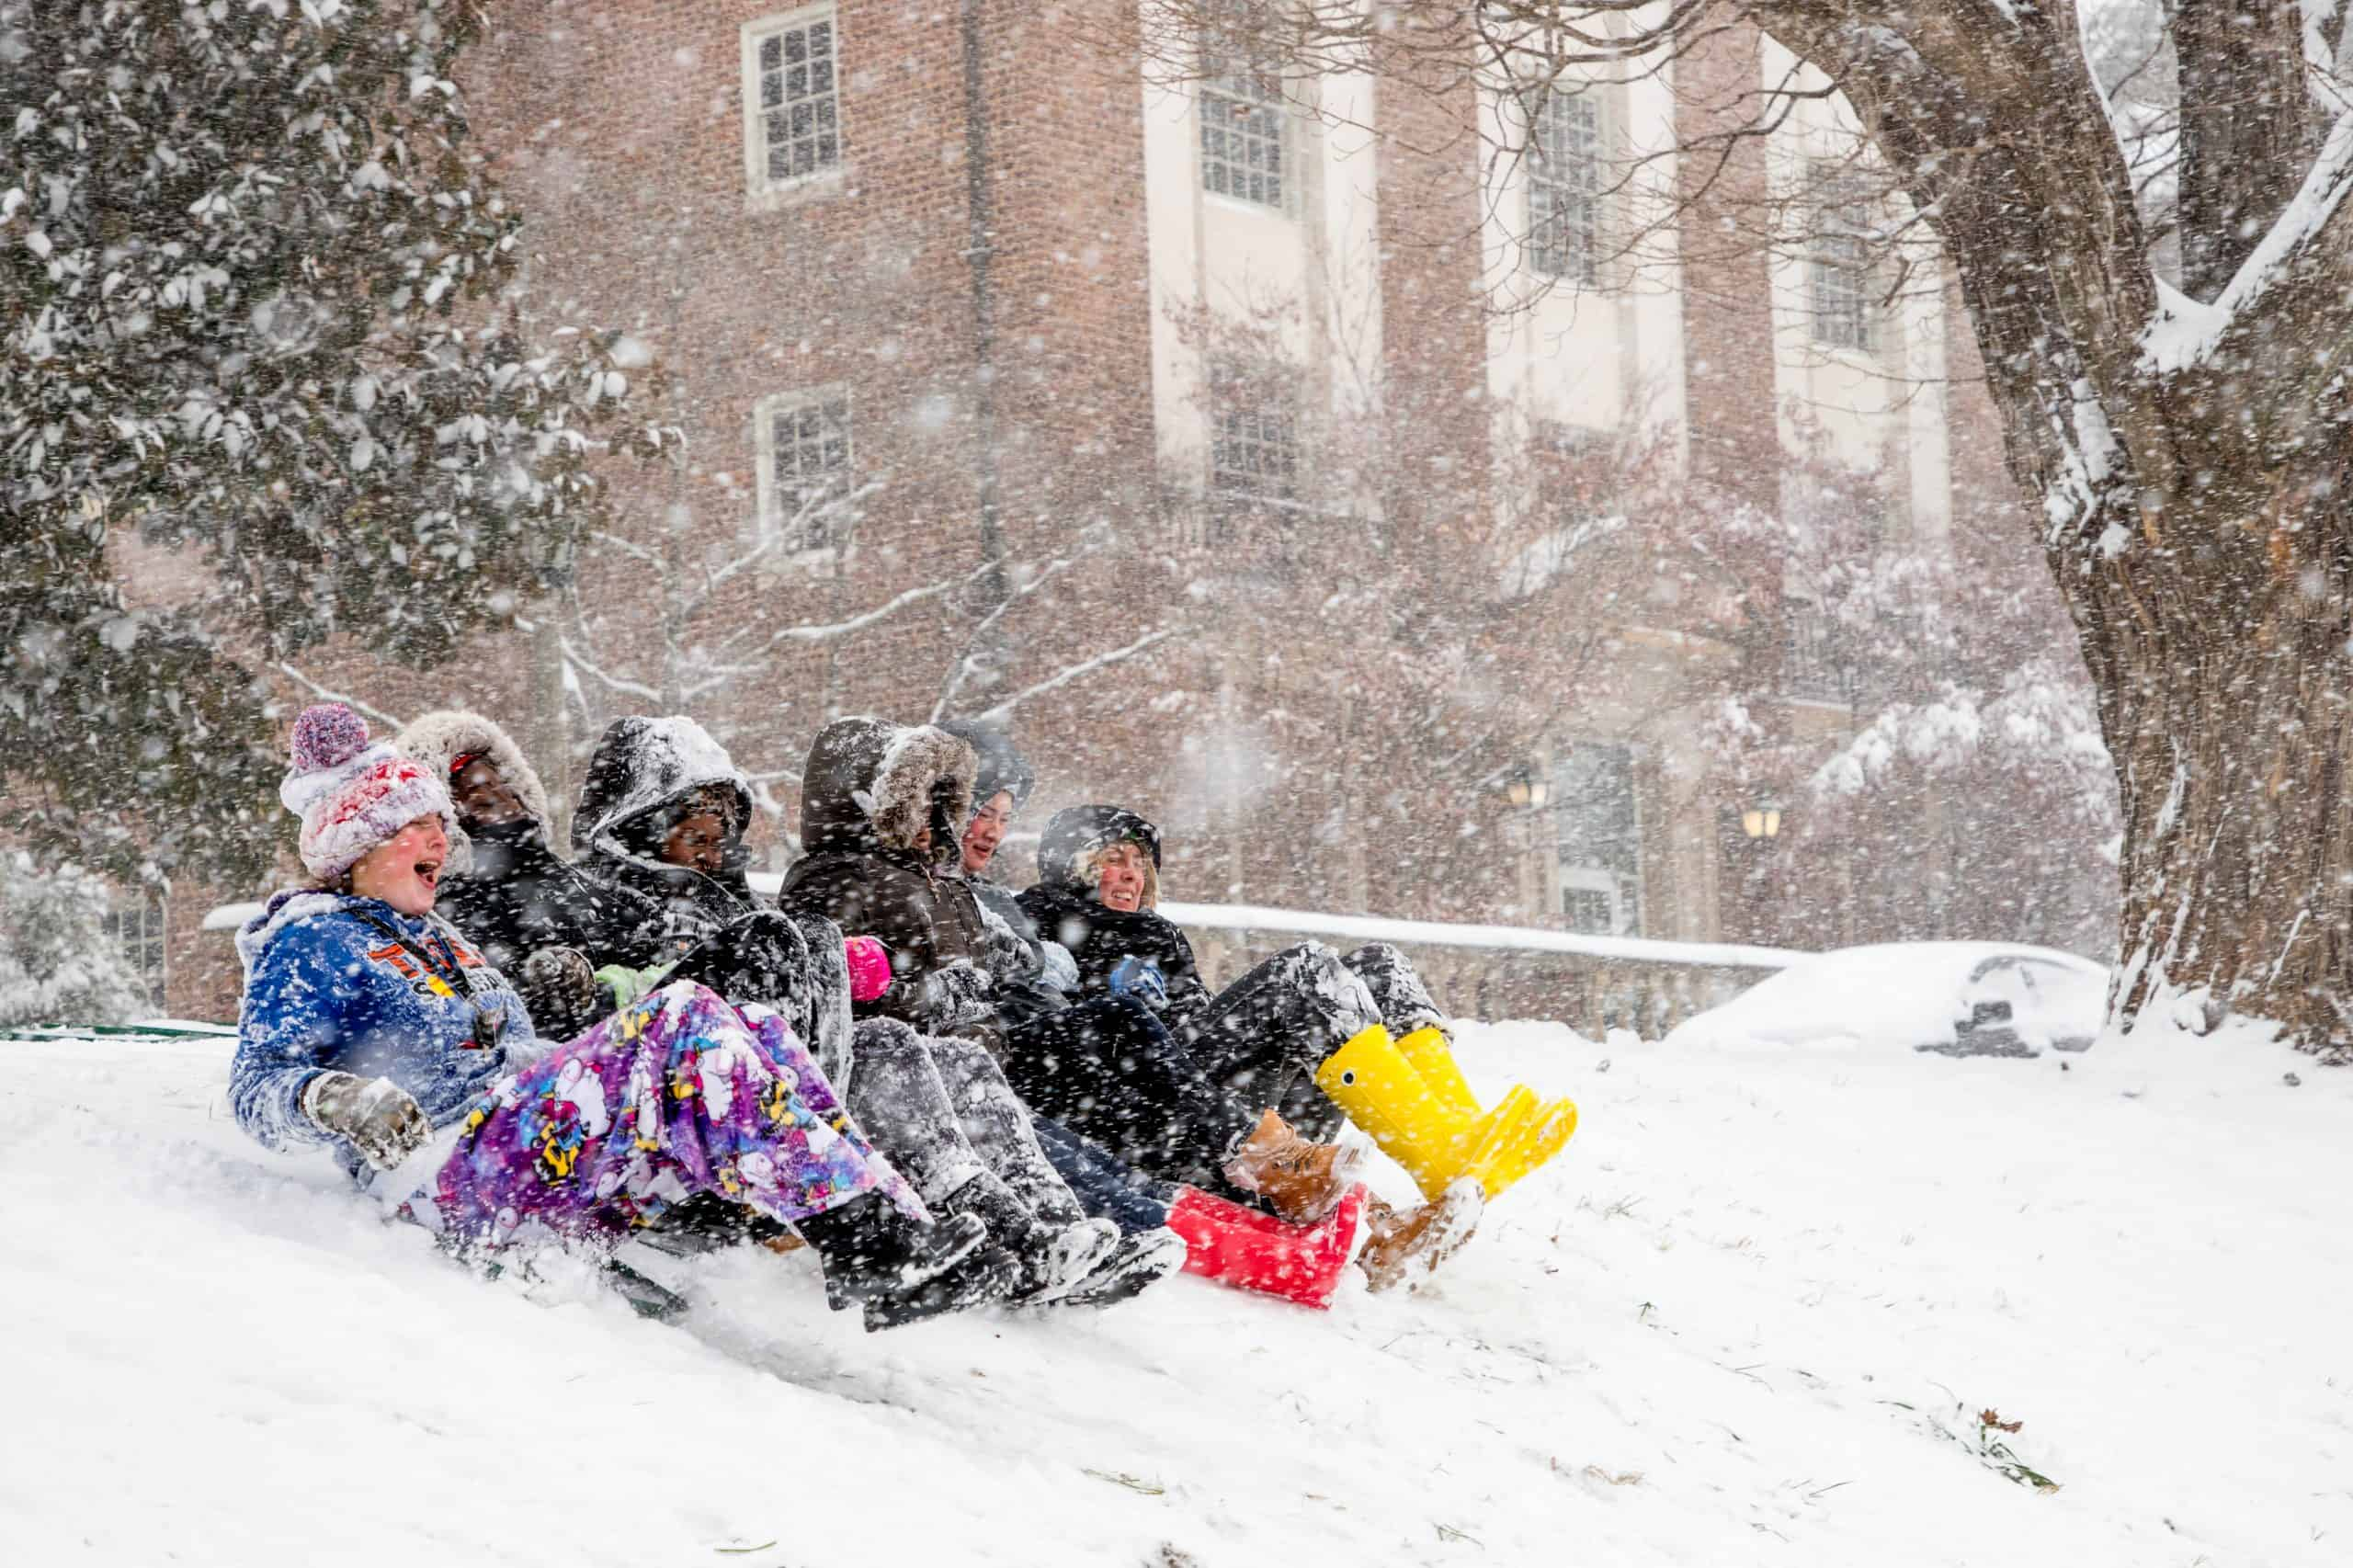 Students sledding down a hill in the snow